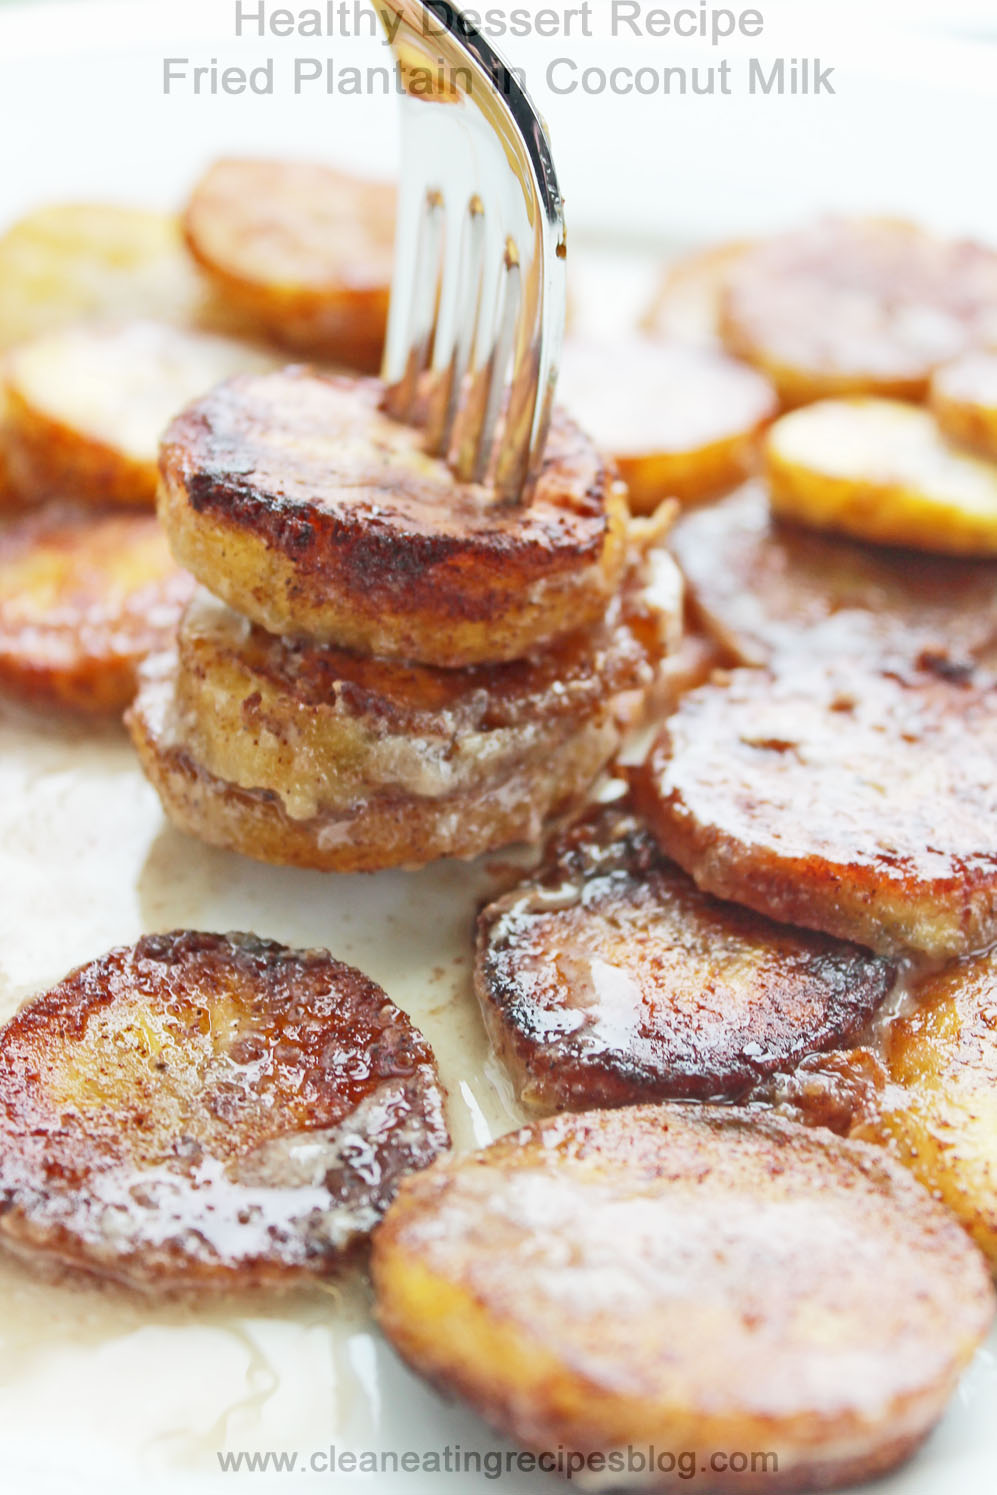 Healthy Dessert Recipe: Fried Plantain in Coconut Milk